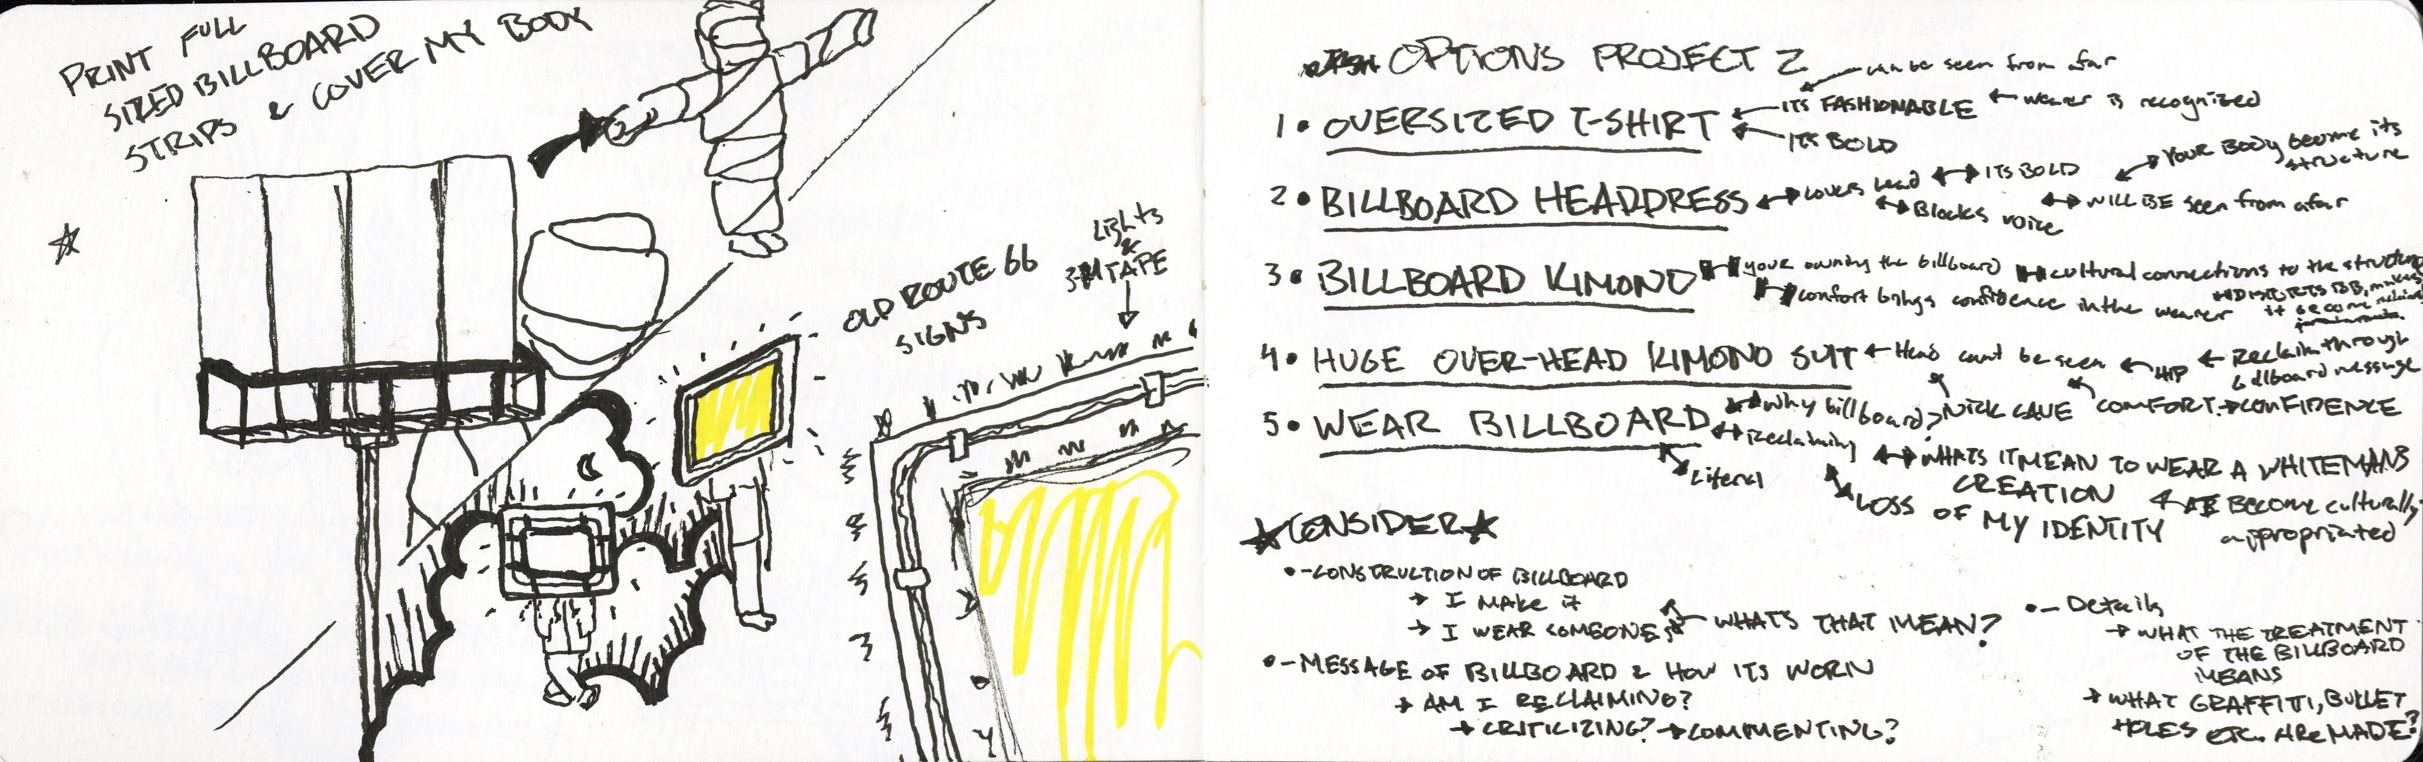 PROJECT2NOTES6.jpg